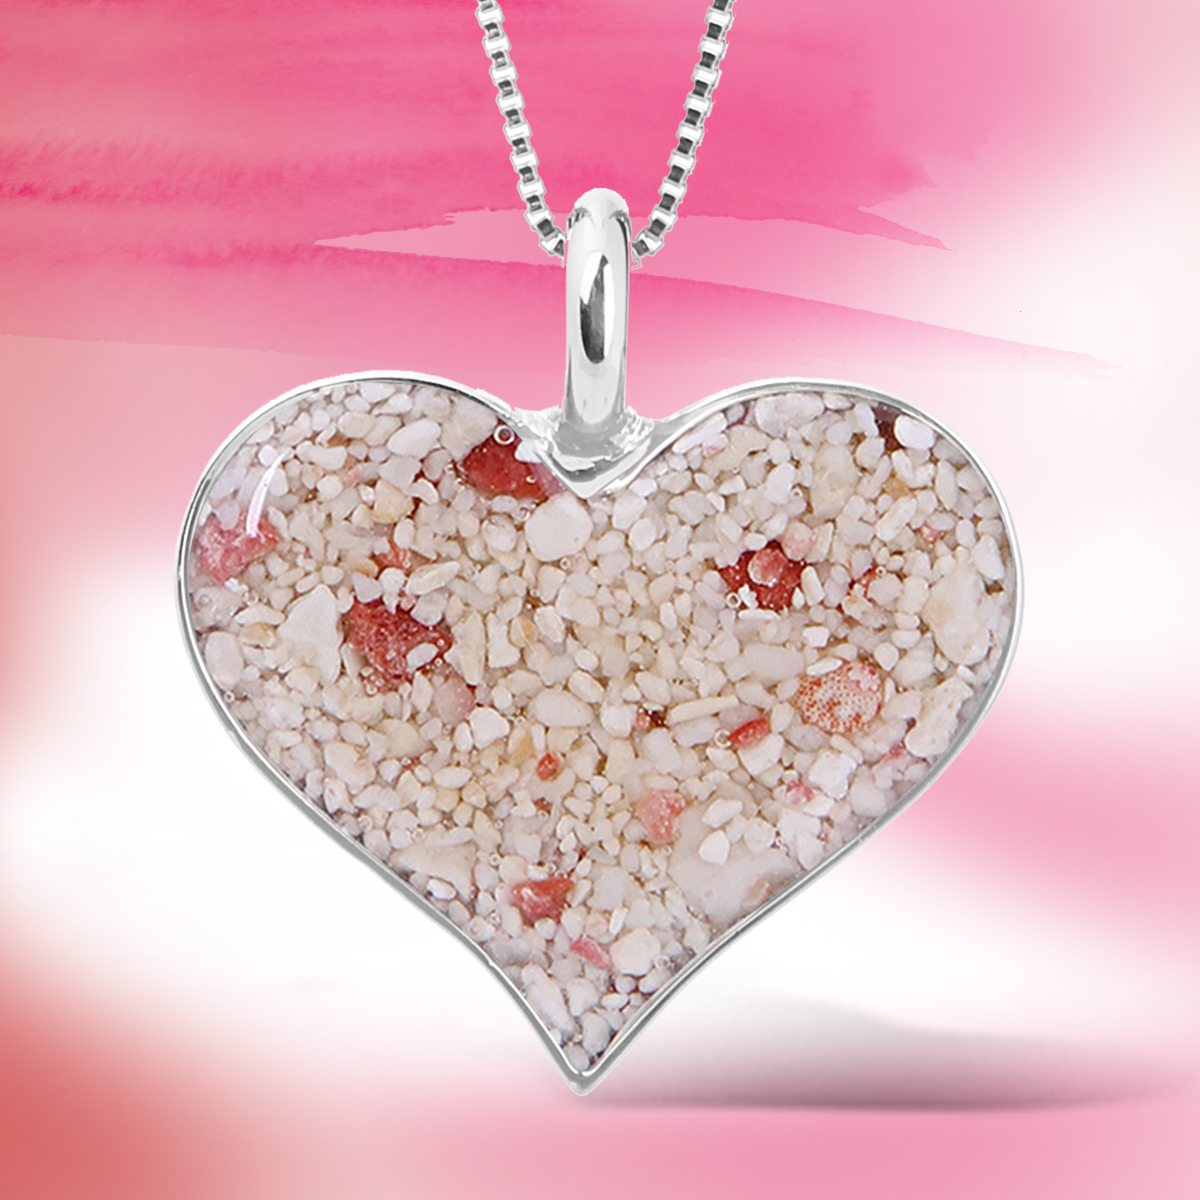 free top chains fine type inlaid floating shipping quality plated women heart silver beautiful jewellery fashion stone day pendant jewelry charm cute sterling femme necklace shop collier valentines charms